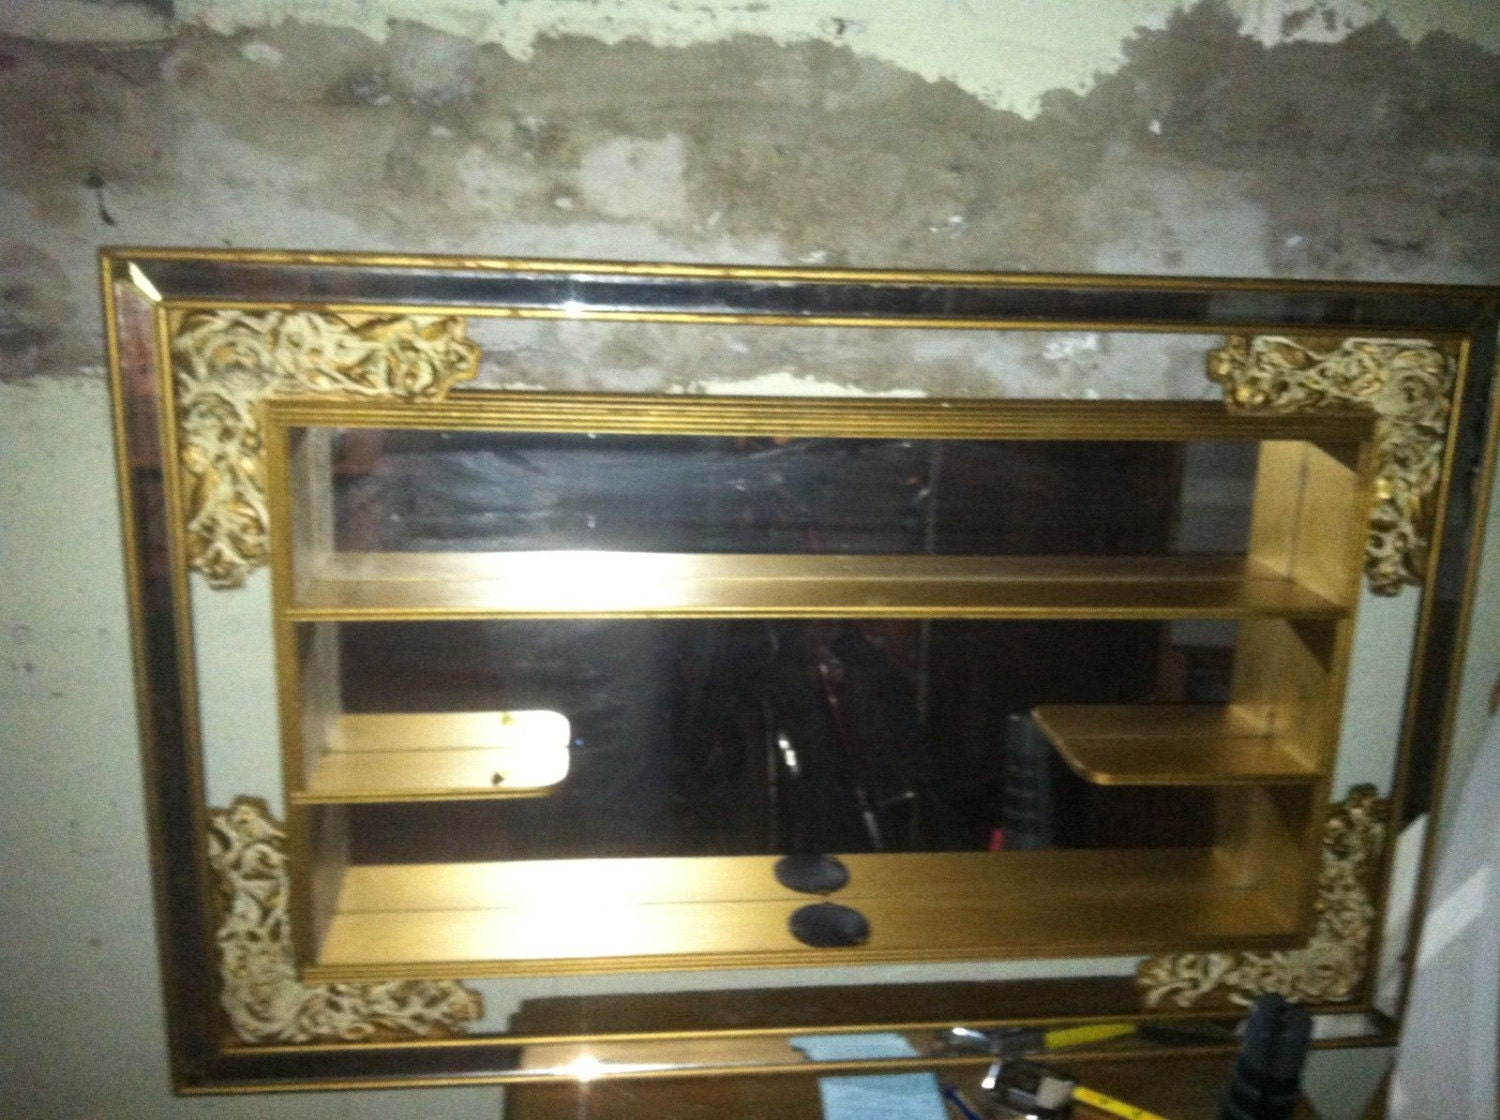 Vntg mid century wood mirrored shadow box display shelf for Mirrored box shelves